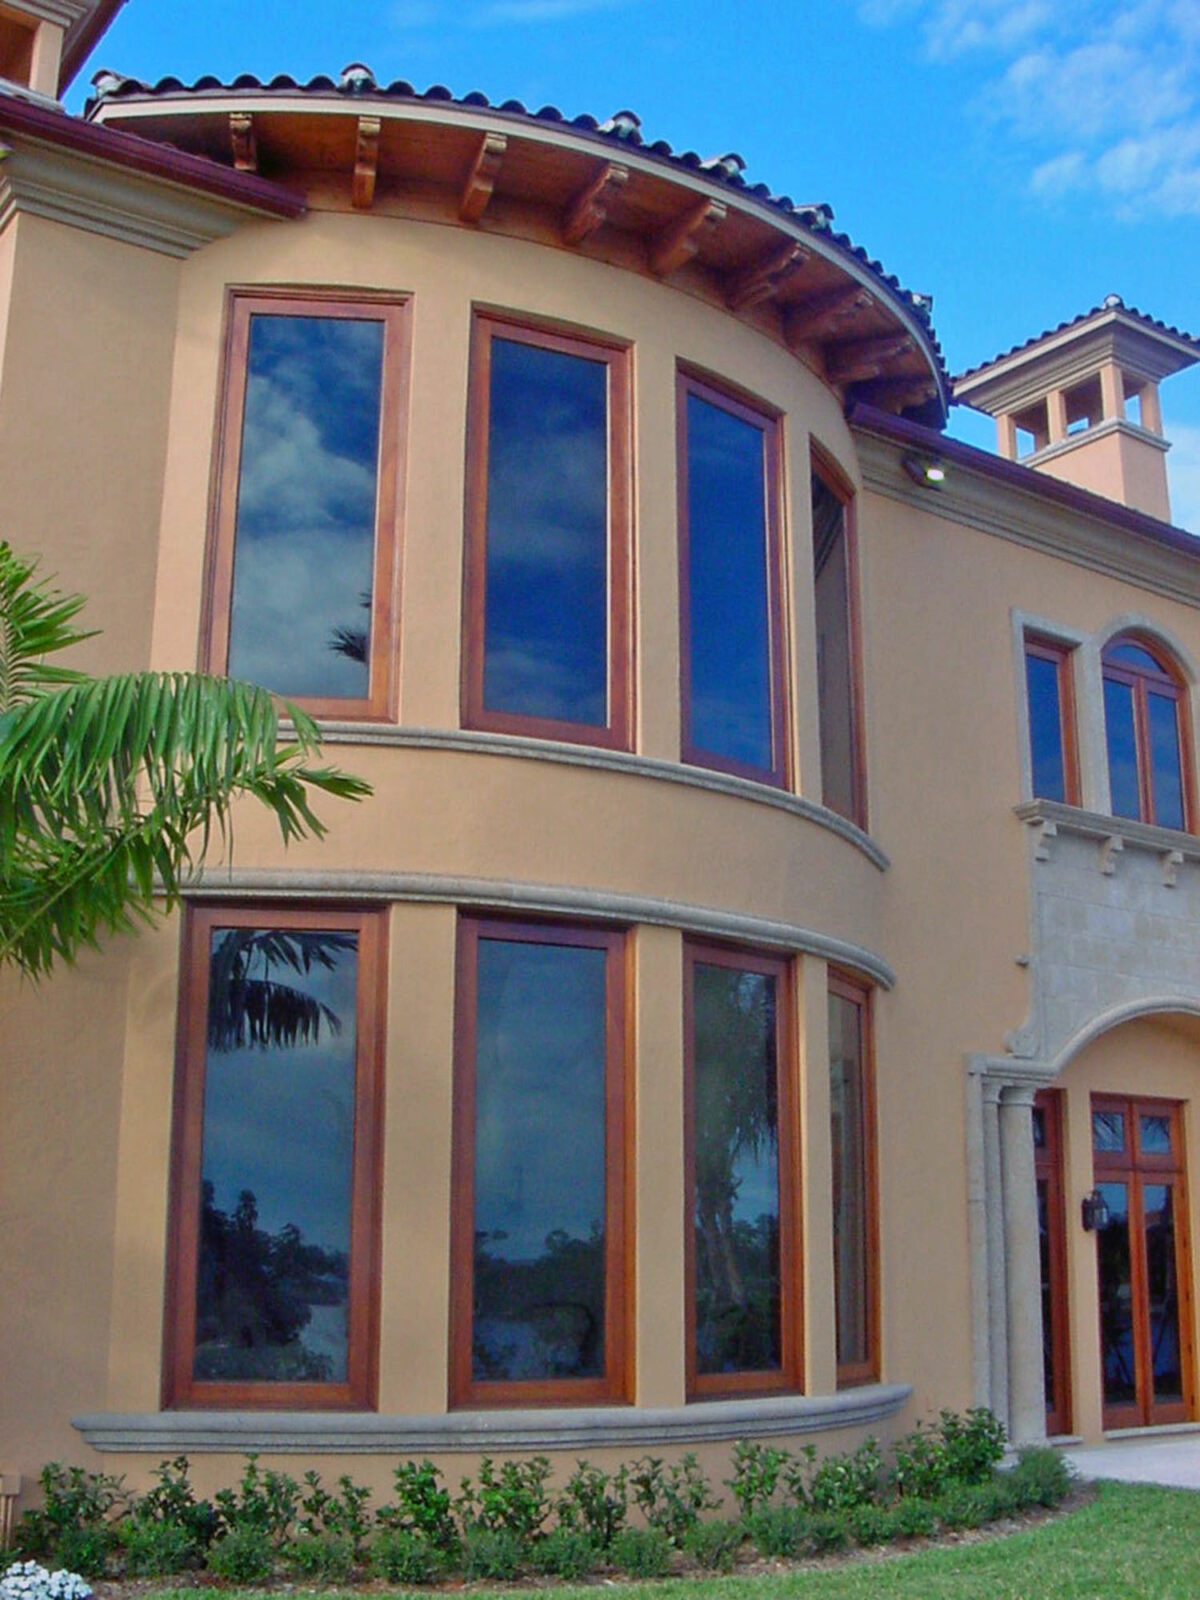 LANTANA FIXED MAHOGANY WINDOWS